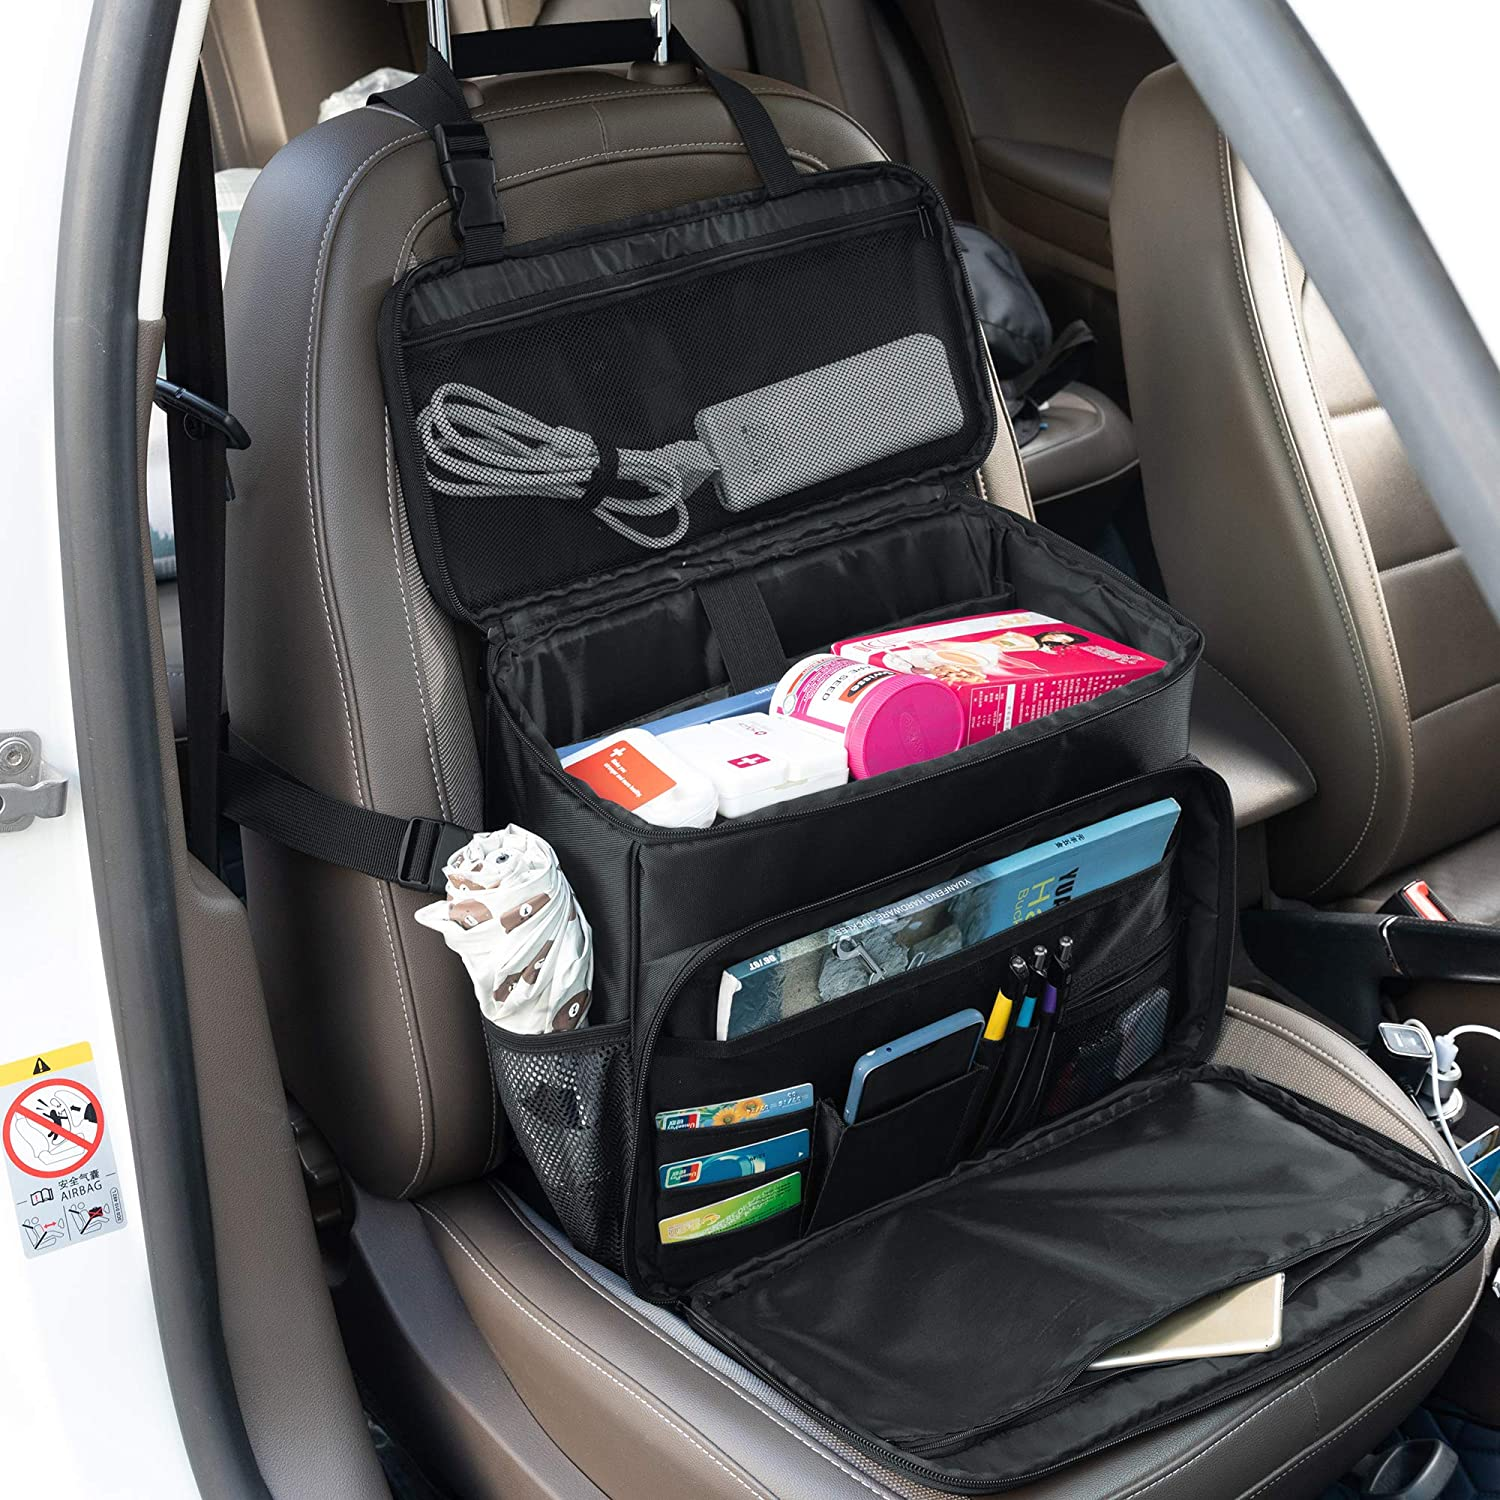 Patent Design Curmio Car Front Seat Organizer Easily Transferred to Handbag Shoulder Bag Perfect for Law Enforcement Passenger Seat Storage Bag with Padded Sleeve for Laptop Police Patrol